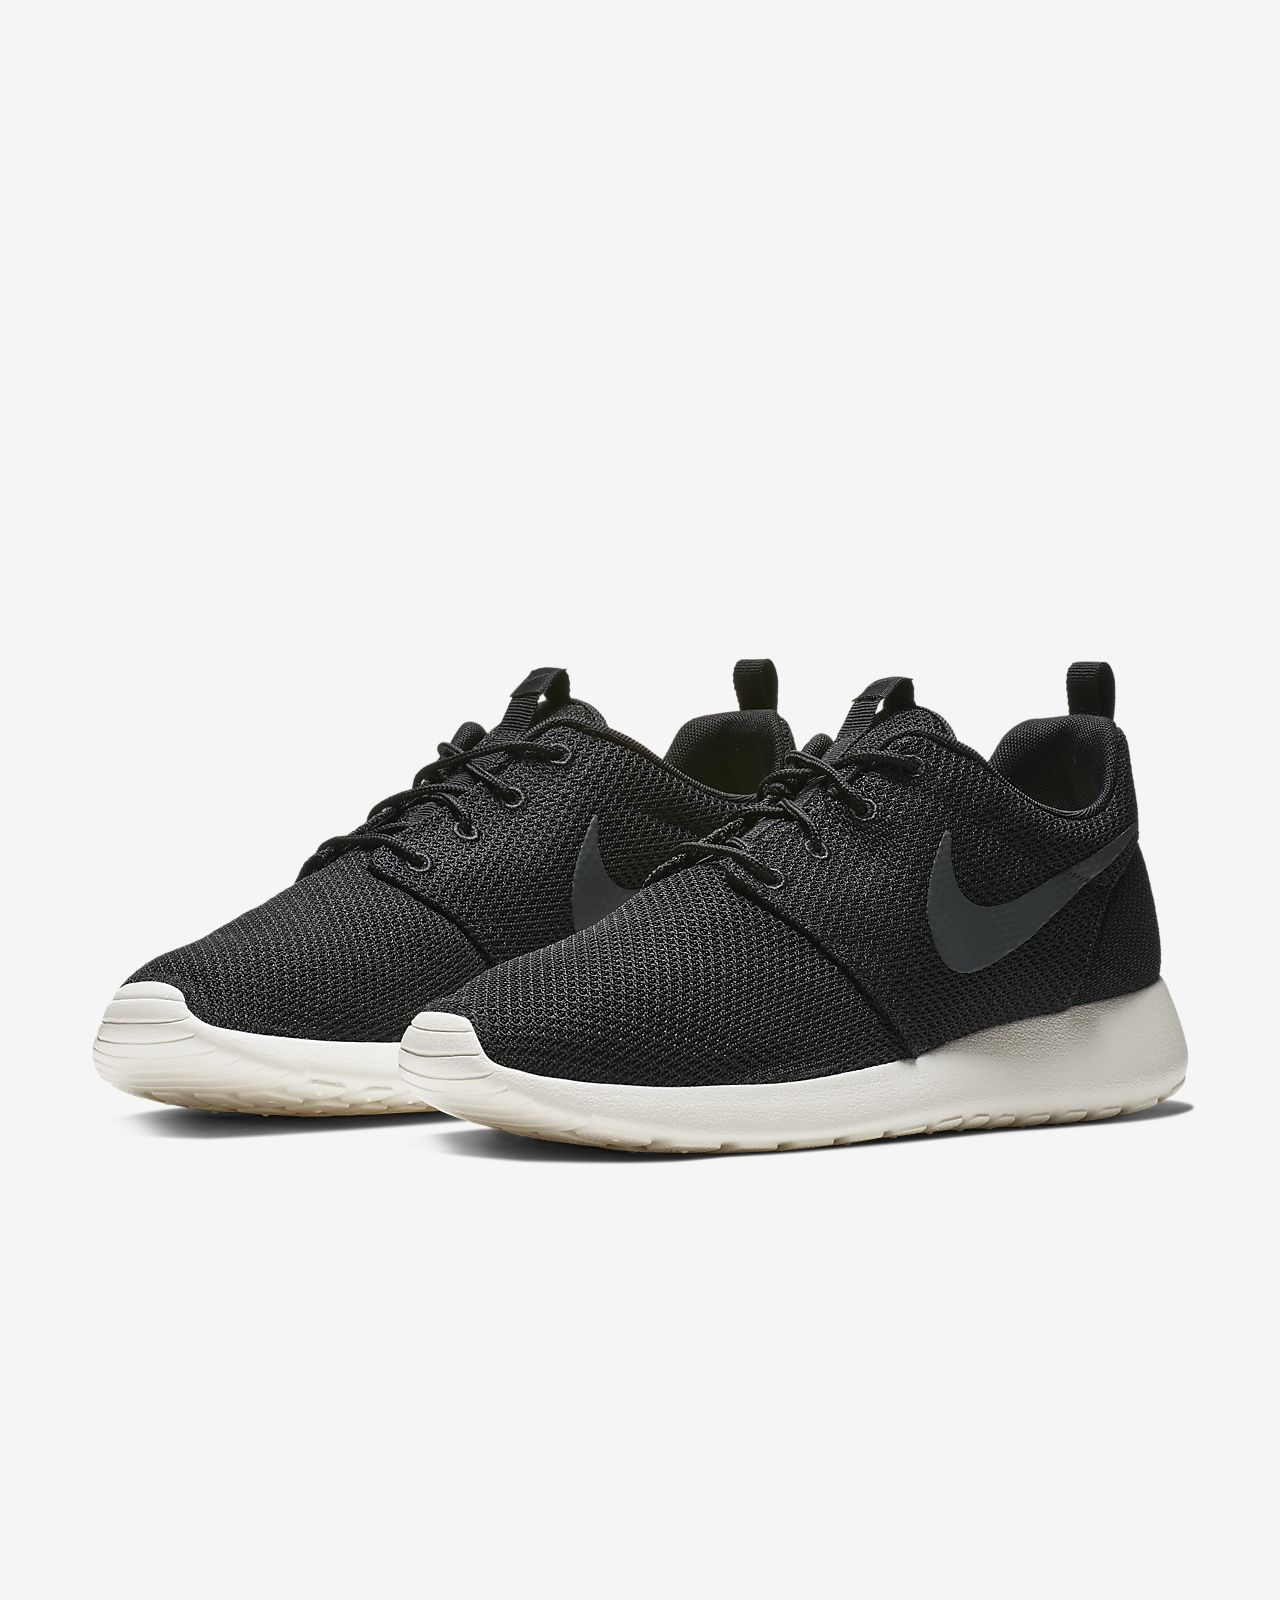 Nike Roshe Run One Mens Shoes 10.5 Black Anthracite Sail 511881 010